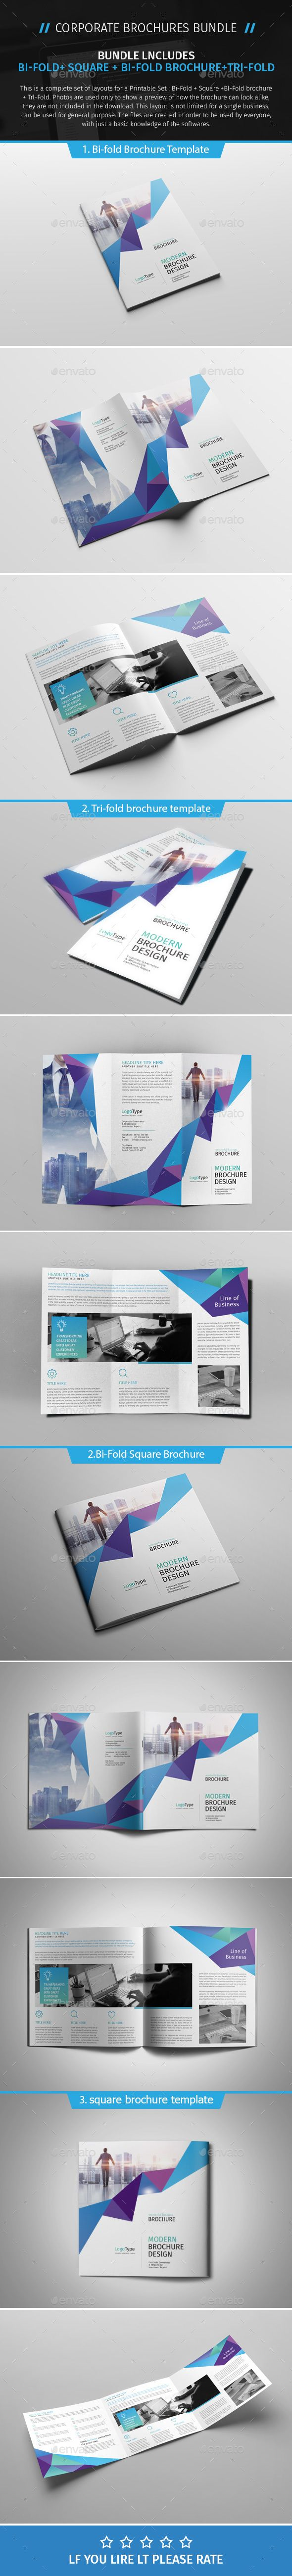 Brochure Bundle 03  — PSD Template #scheme #trading • Download ➝ https://graphicriver.net/item/brochure-bundle-03/18073246?ref=pxcr